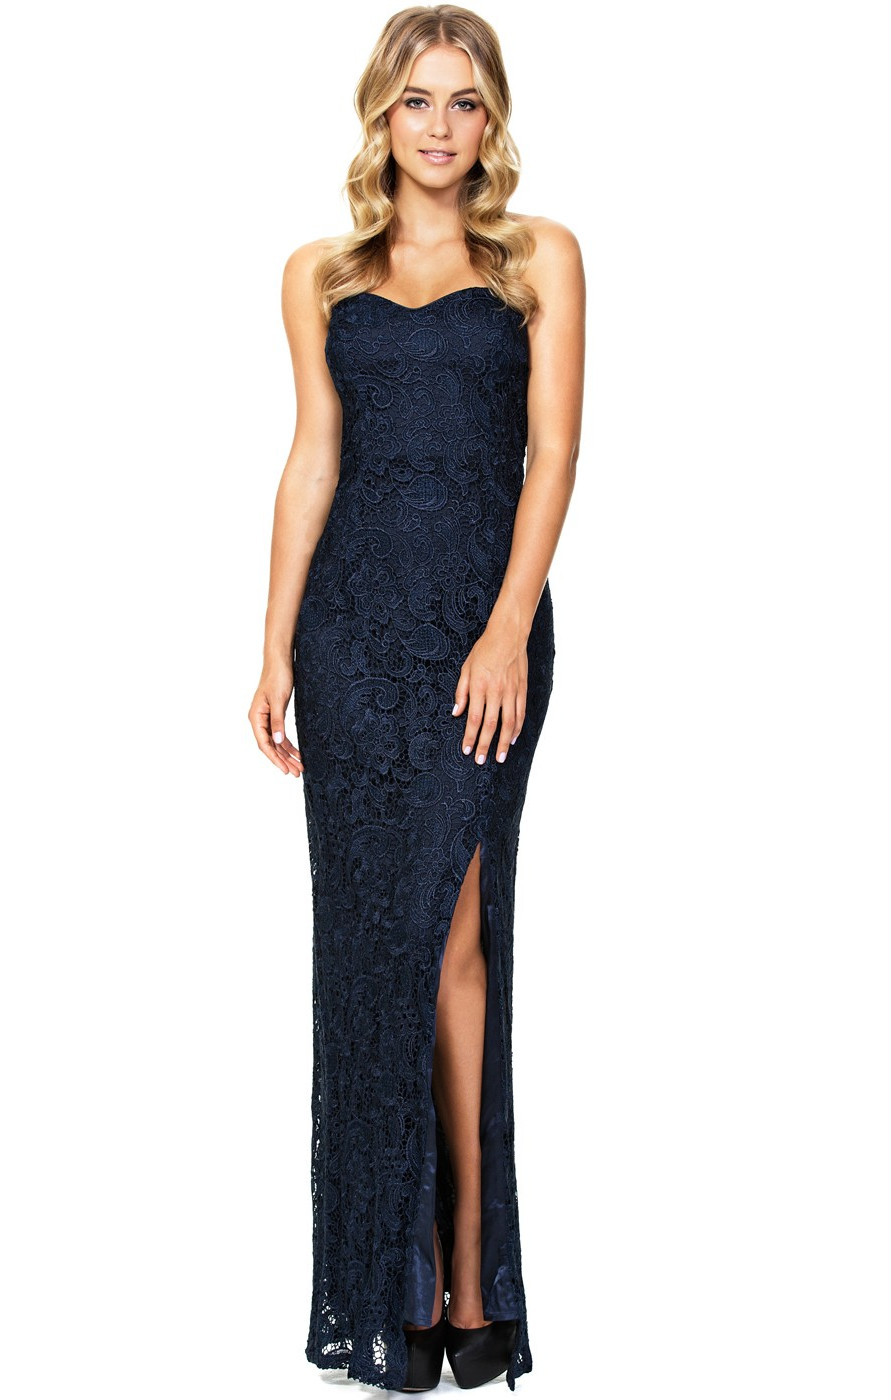 Lana Lace Evening Dress Navy by Langhem | FREE SHIPPING | ARCHFASHION